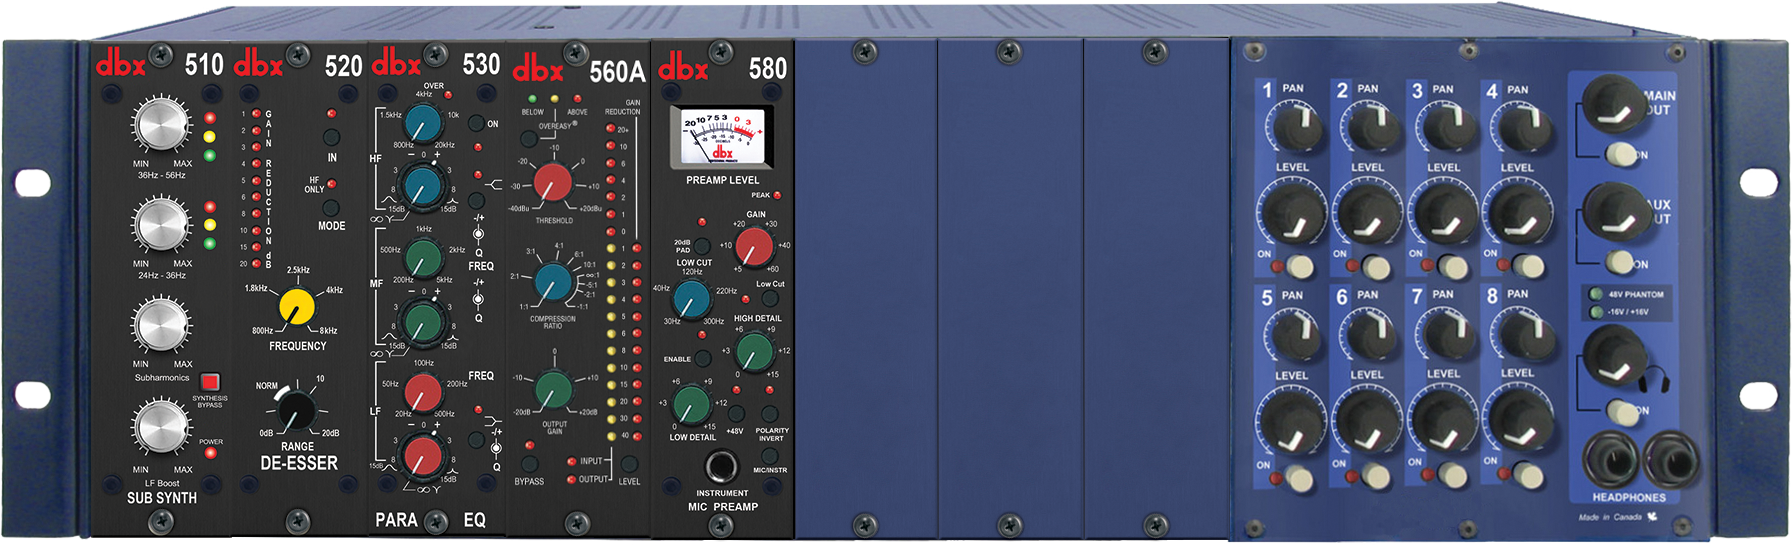 dbx 500 Serieces Processors at NAMM 2015